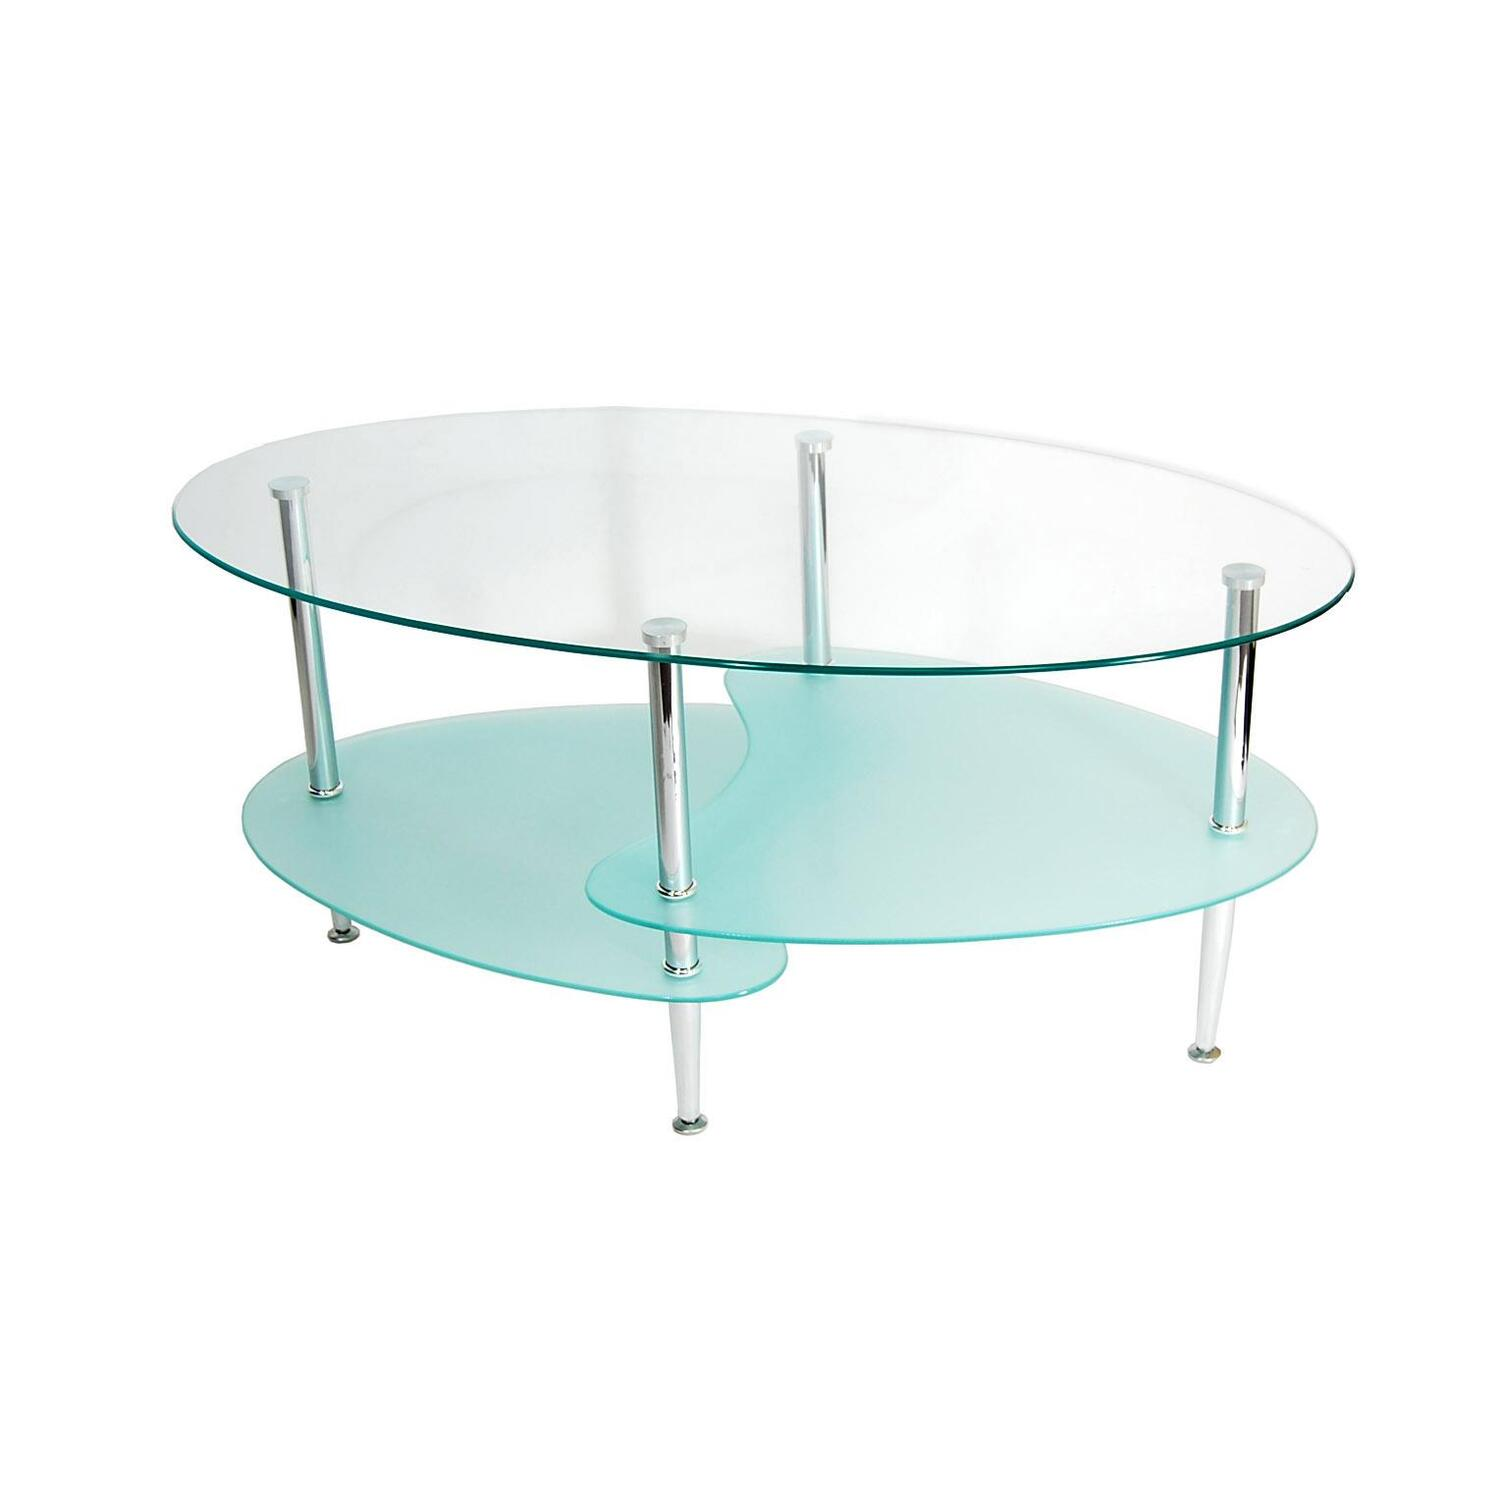 Walker Edison 38 In Wave Oval Coffee Table By OJ Commerce C38B4 99